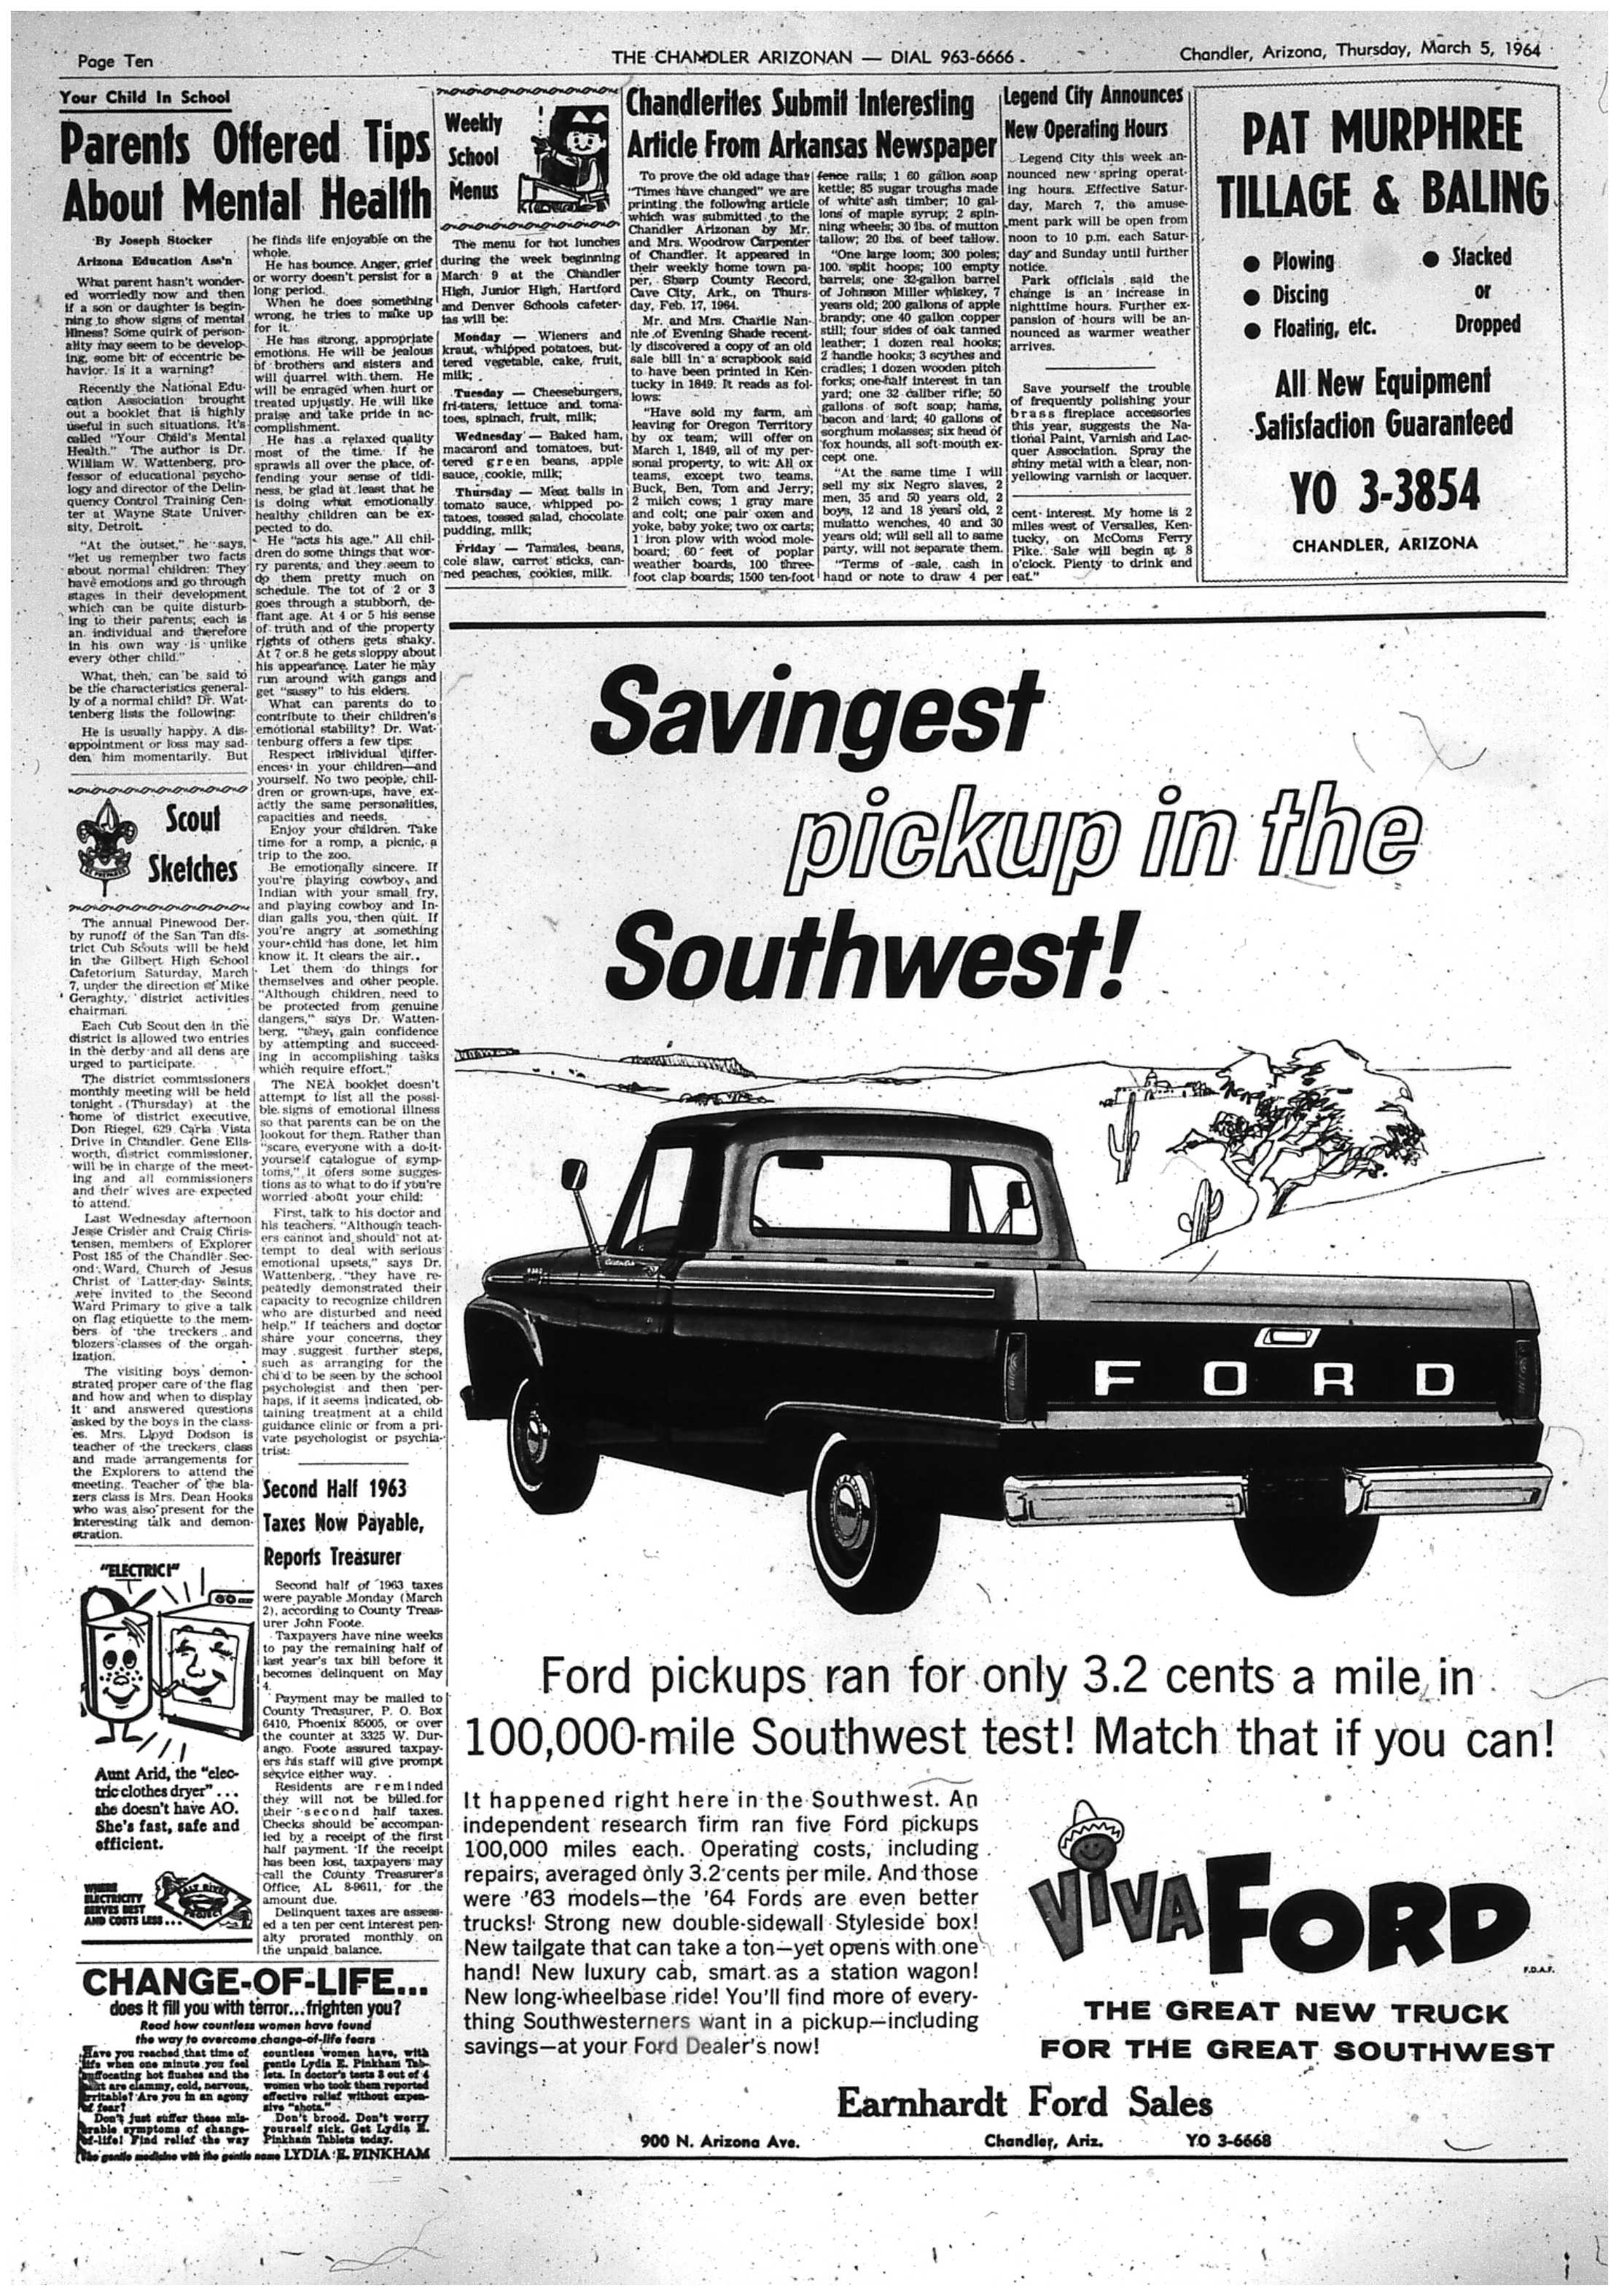 03-05-1964 - Page 10 .jpg